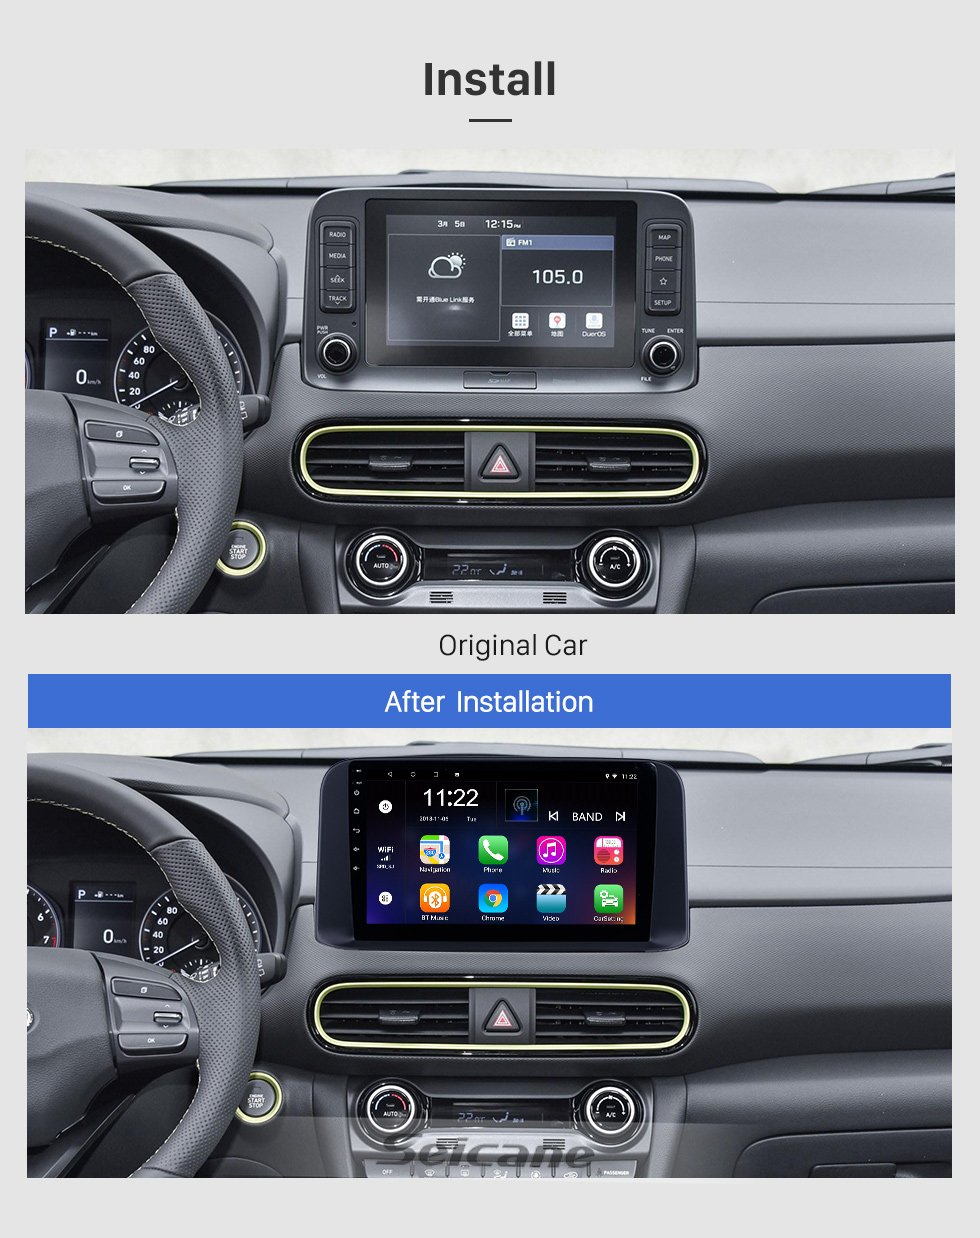 Seicane 10.1 inch 2018 2019 Hyundai ENCINO Android 8.1 HD Touchscreen GPS Navi Radio with WIFI AUX Bluetooth support RDS Carplay 3G Steering Wheel Control